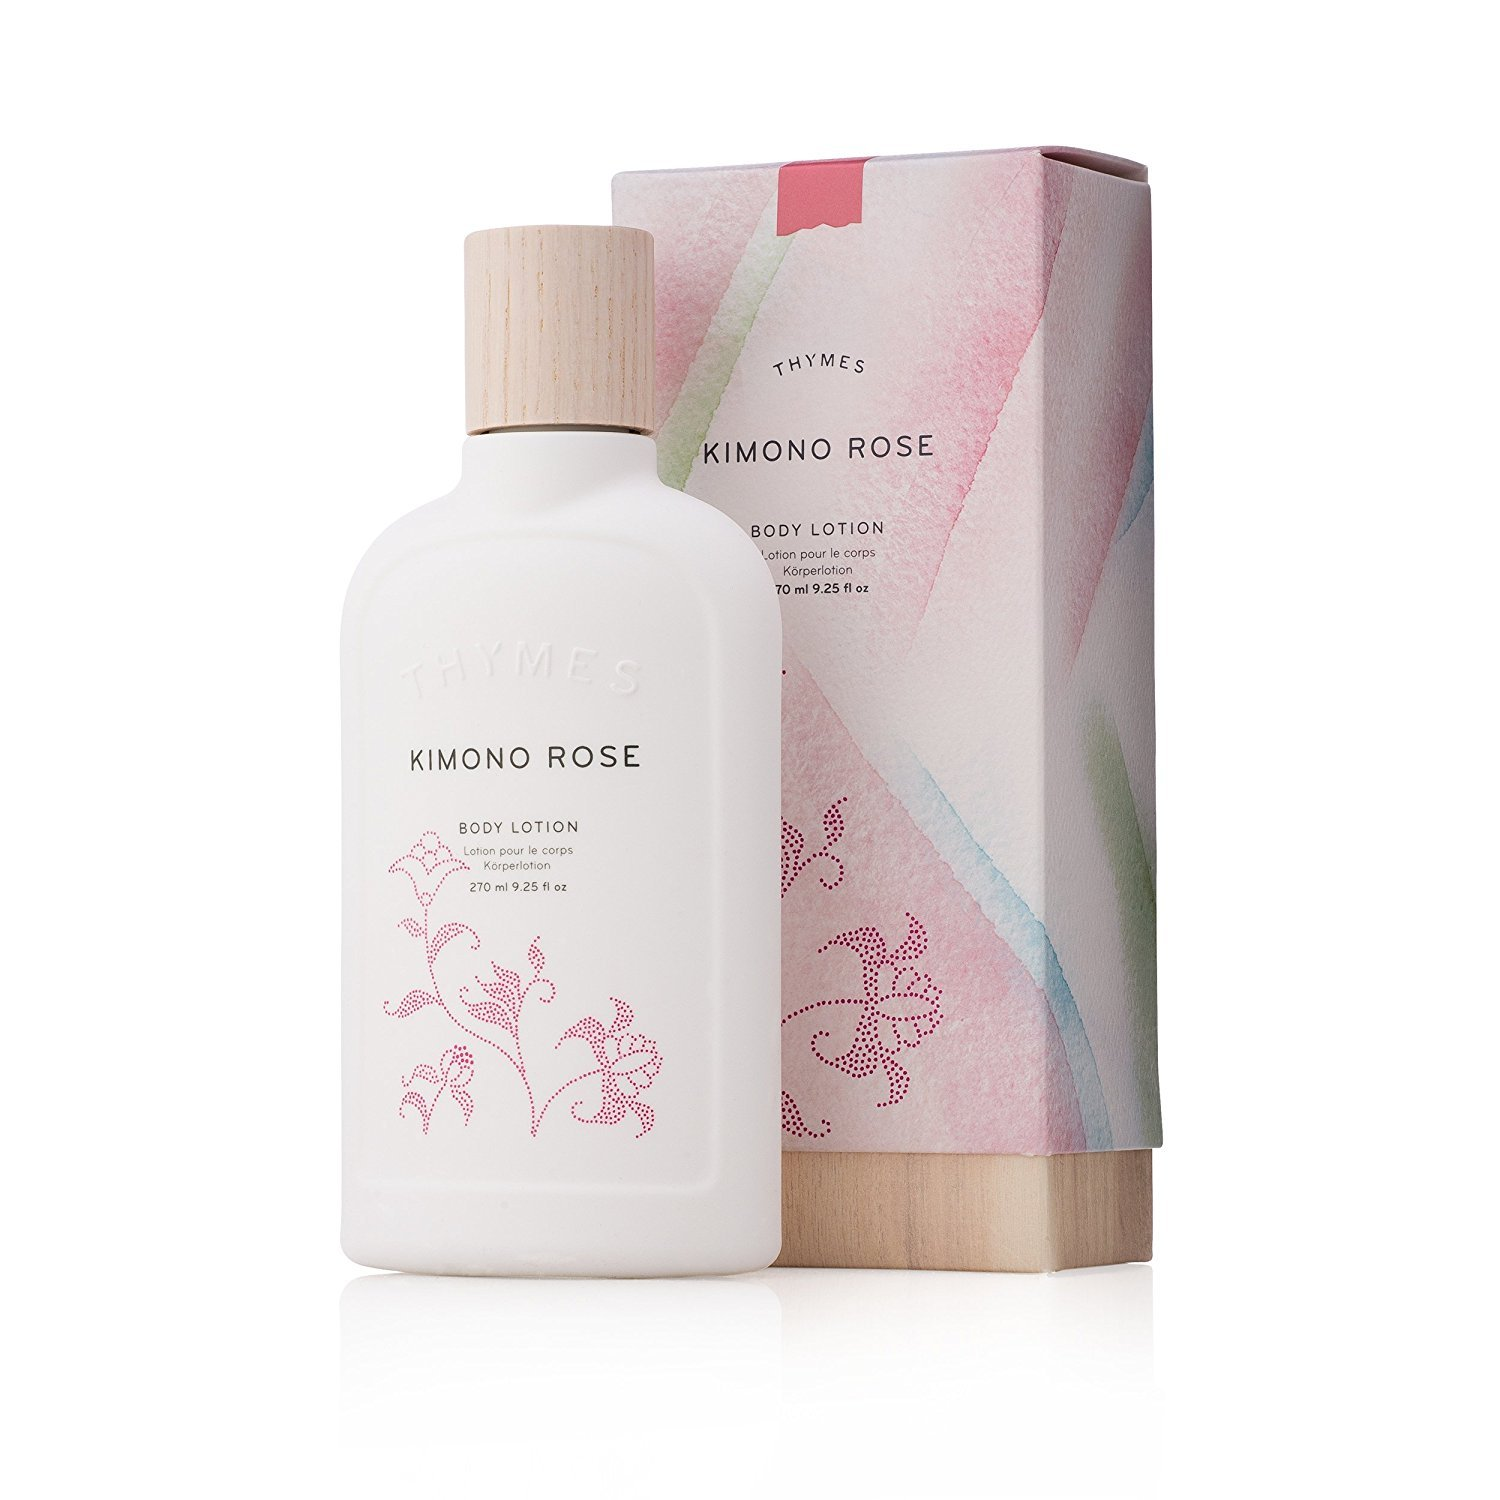 Thymes Body Lotion, Kimono Rose, 9.25 oz [Health and Beauty] 0621300100